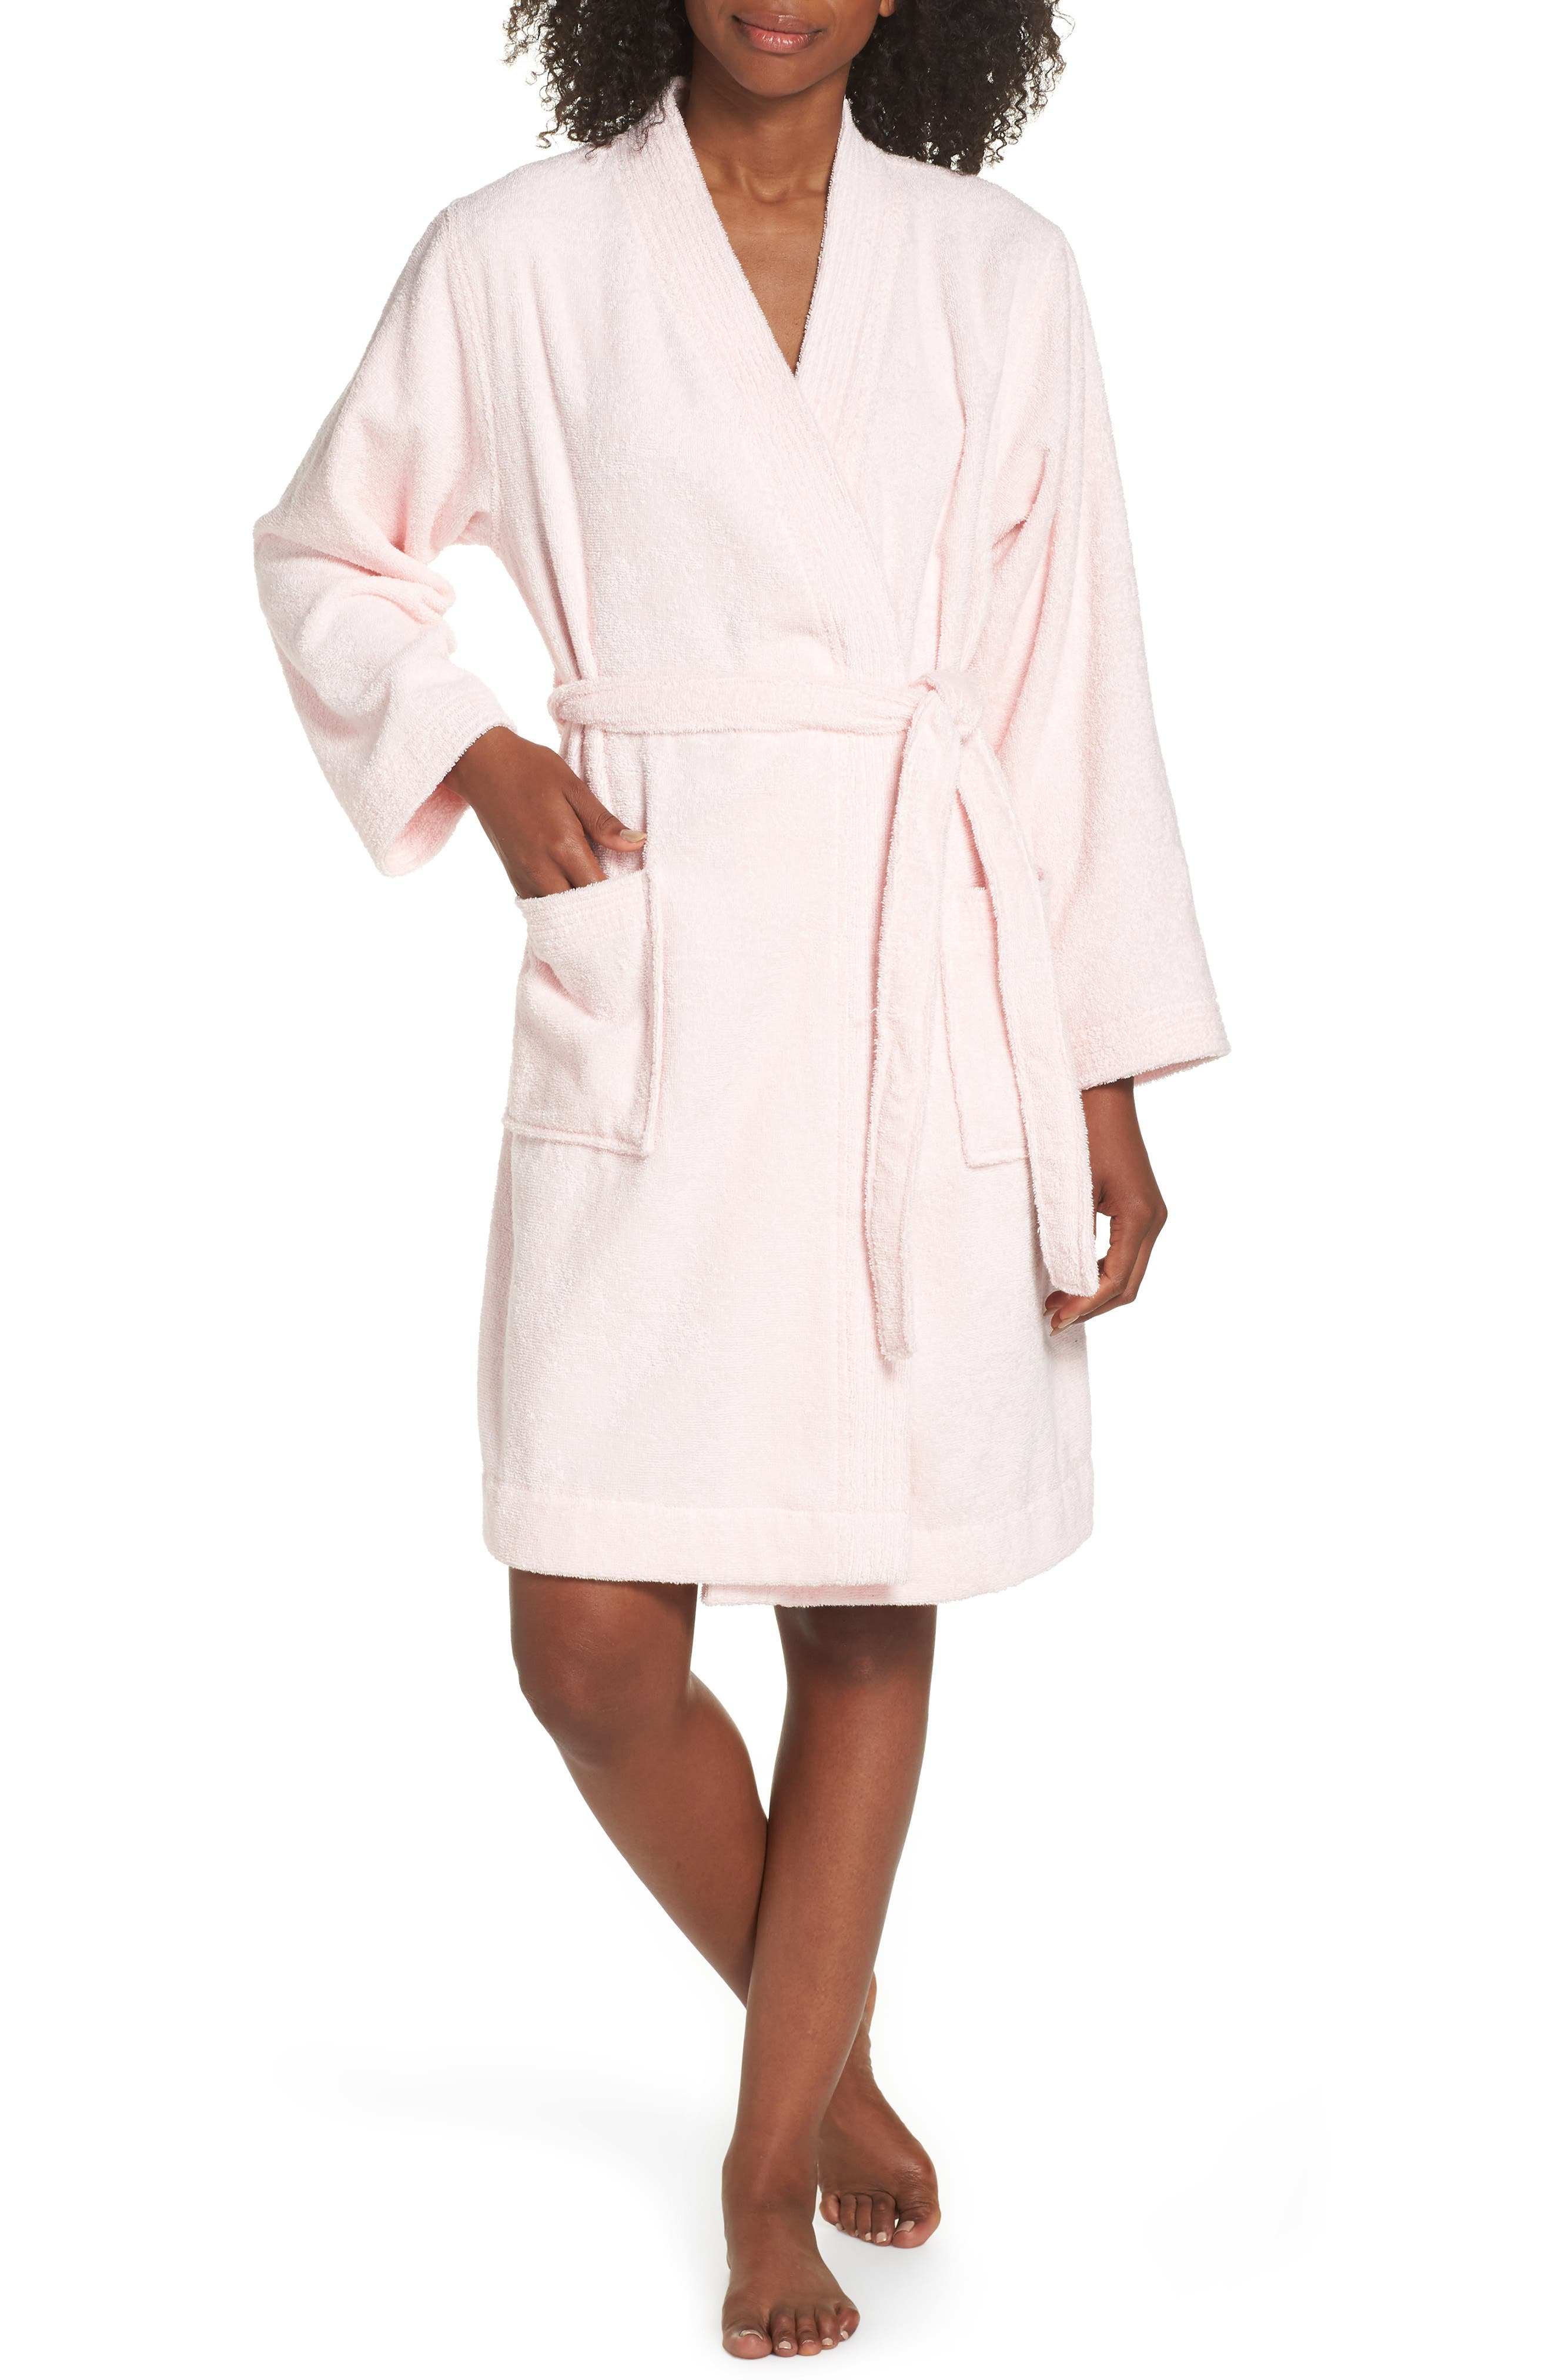 UGG<SUP>®</SUP>, Lorie Terry Short Robe, Main thumbnail 1, color, SEASHELL PINK